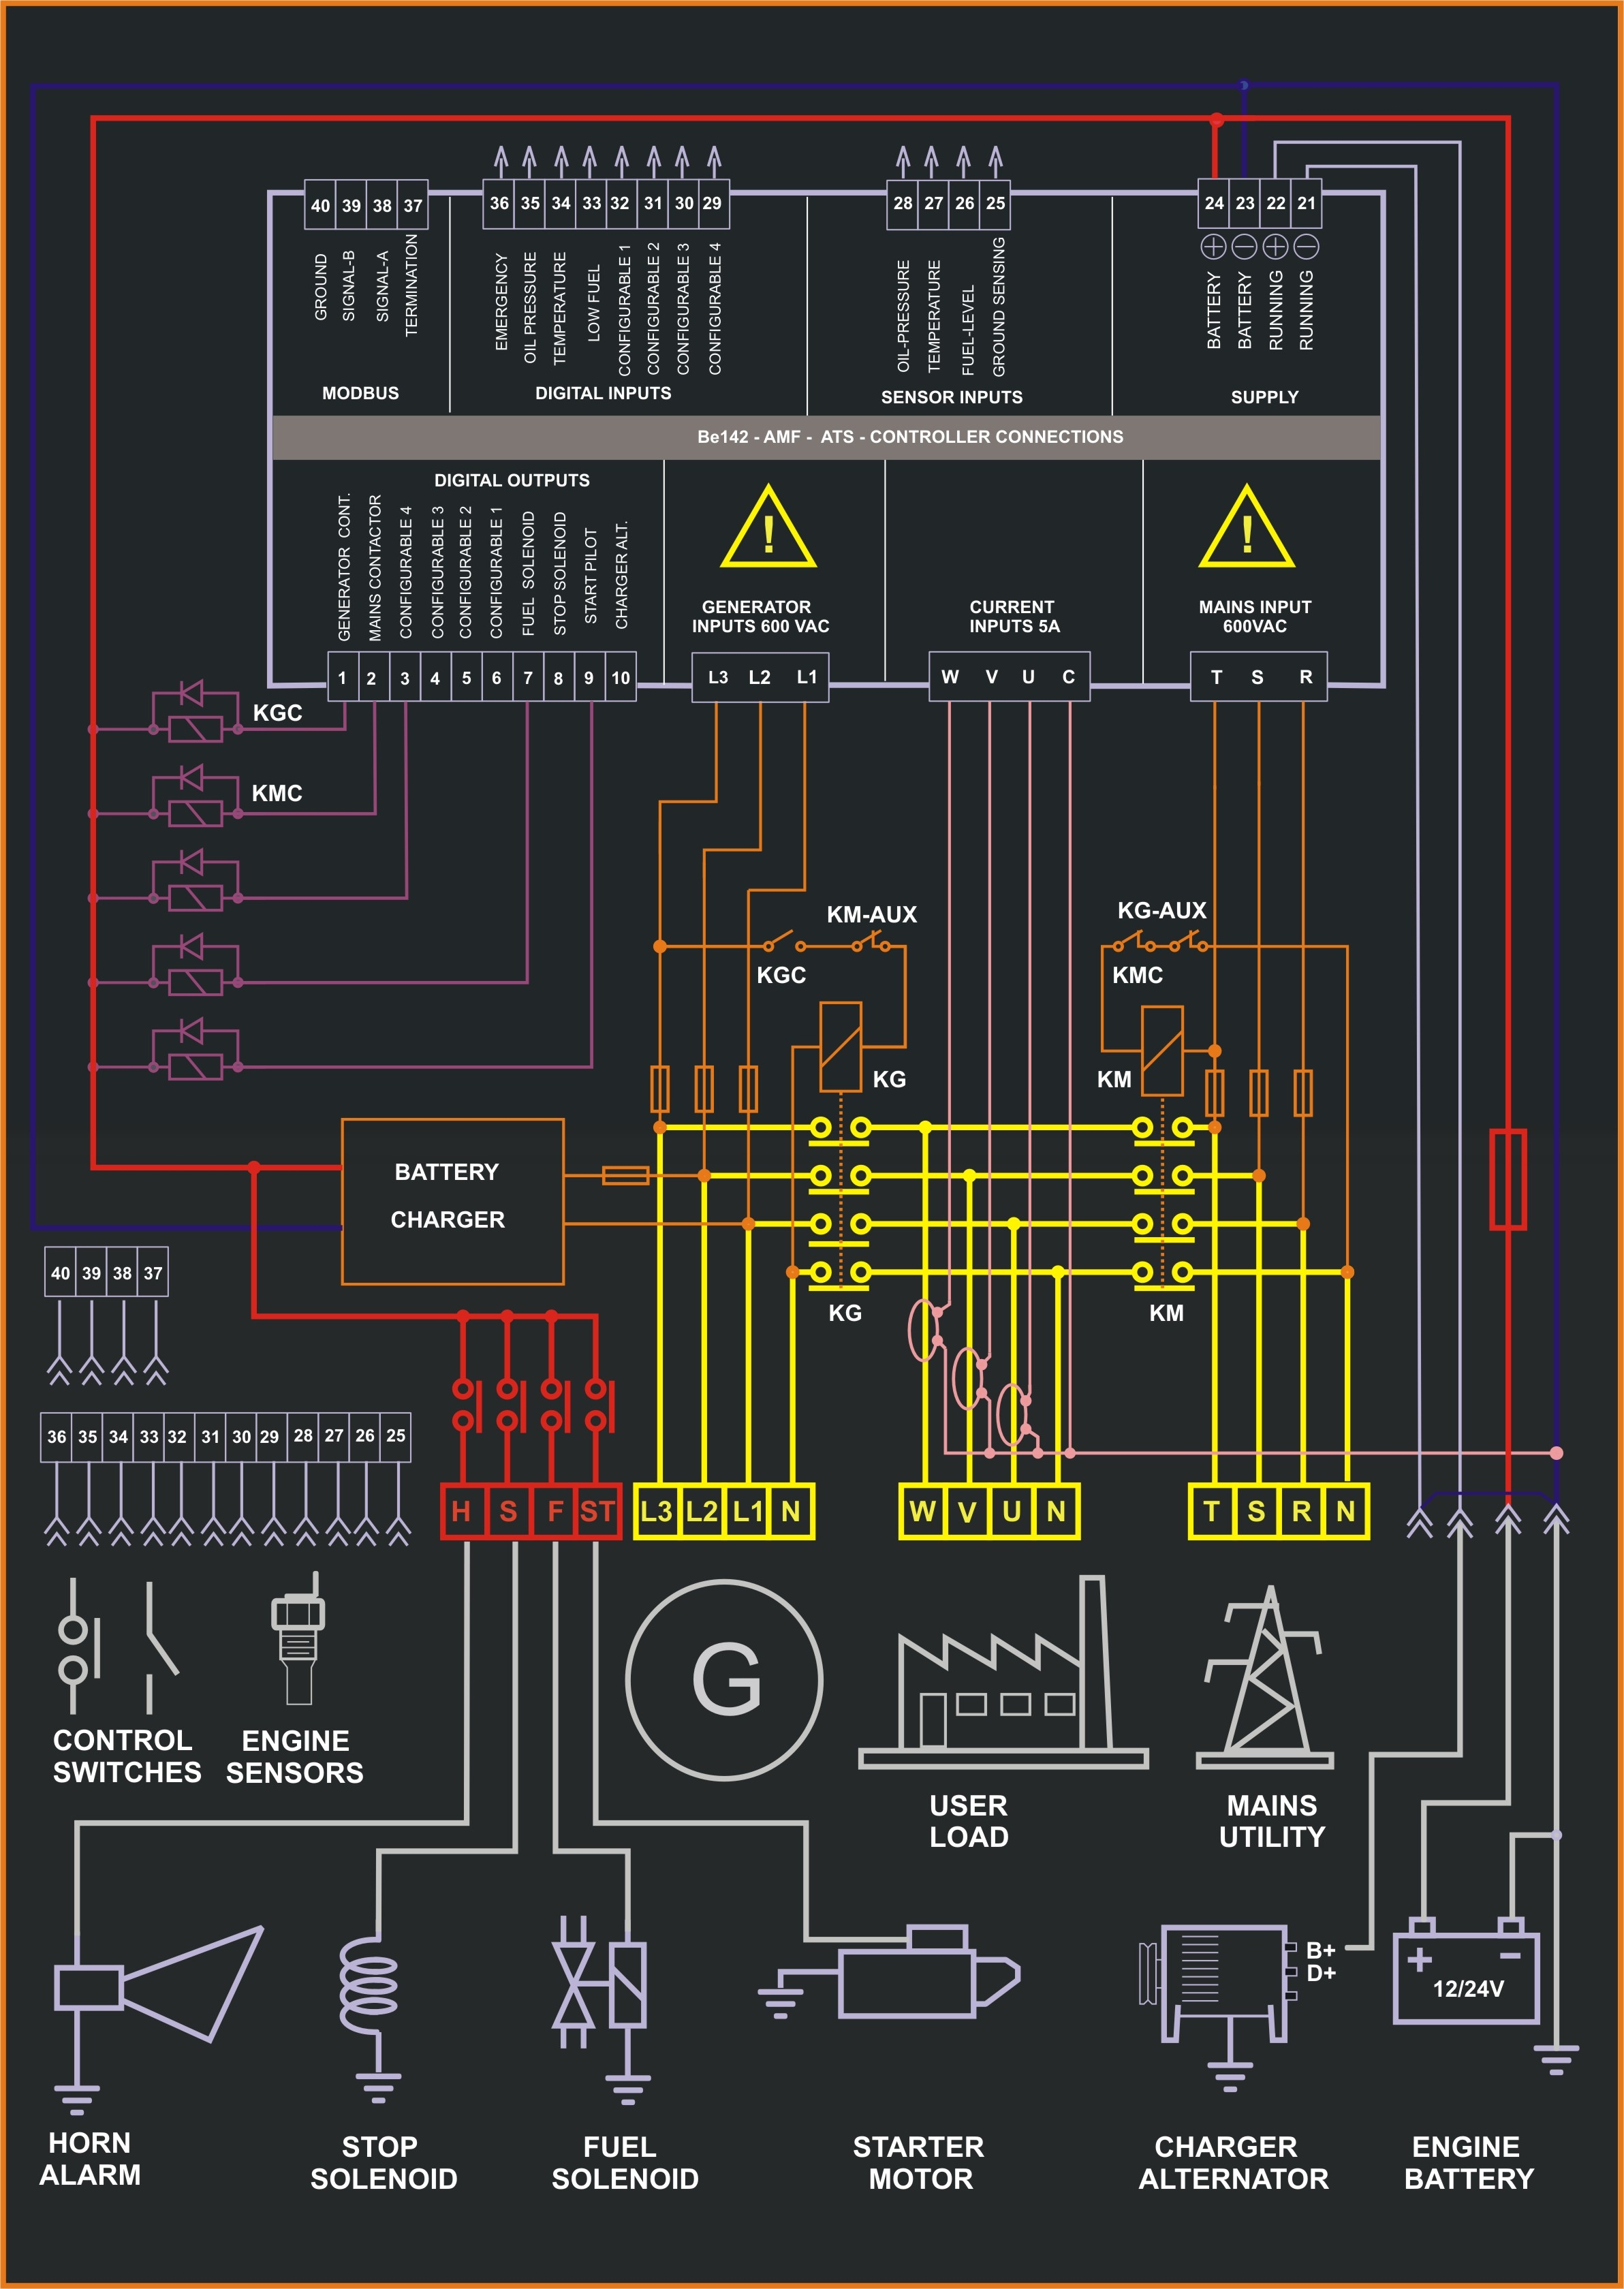 Control panel circuit diagram